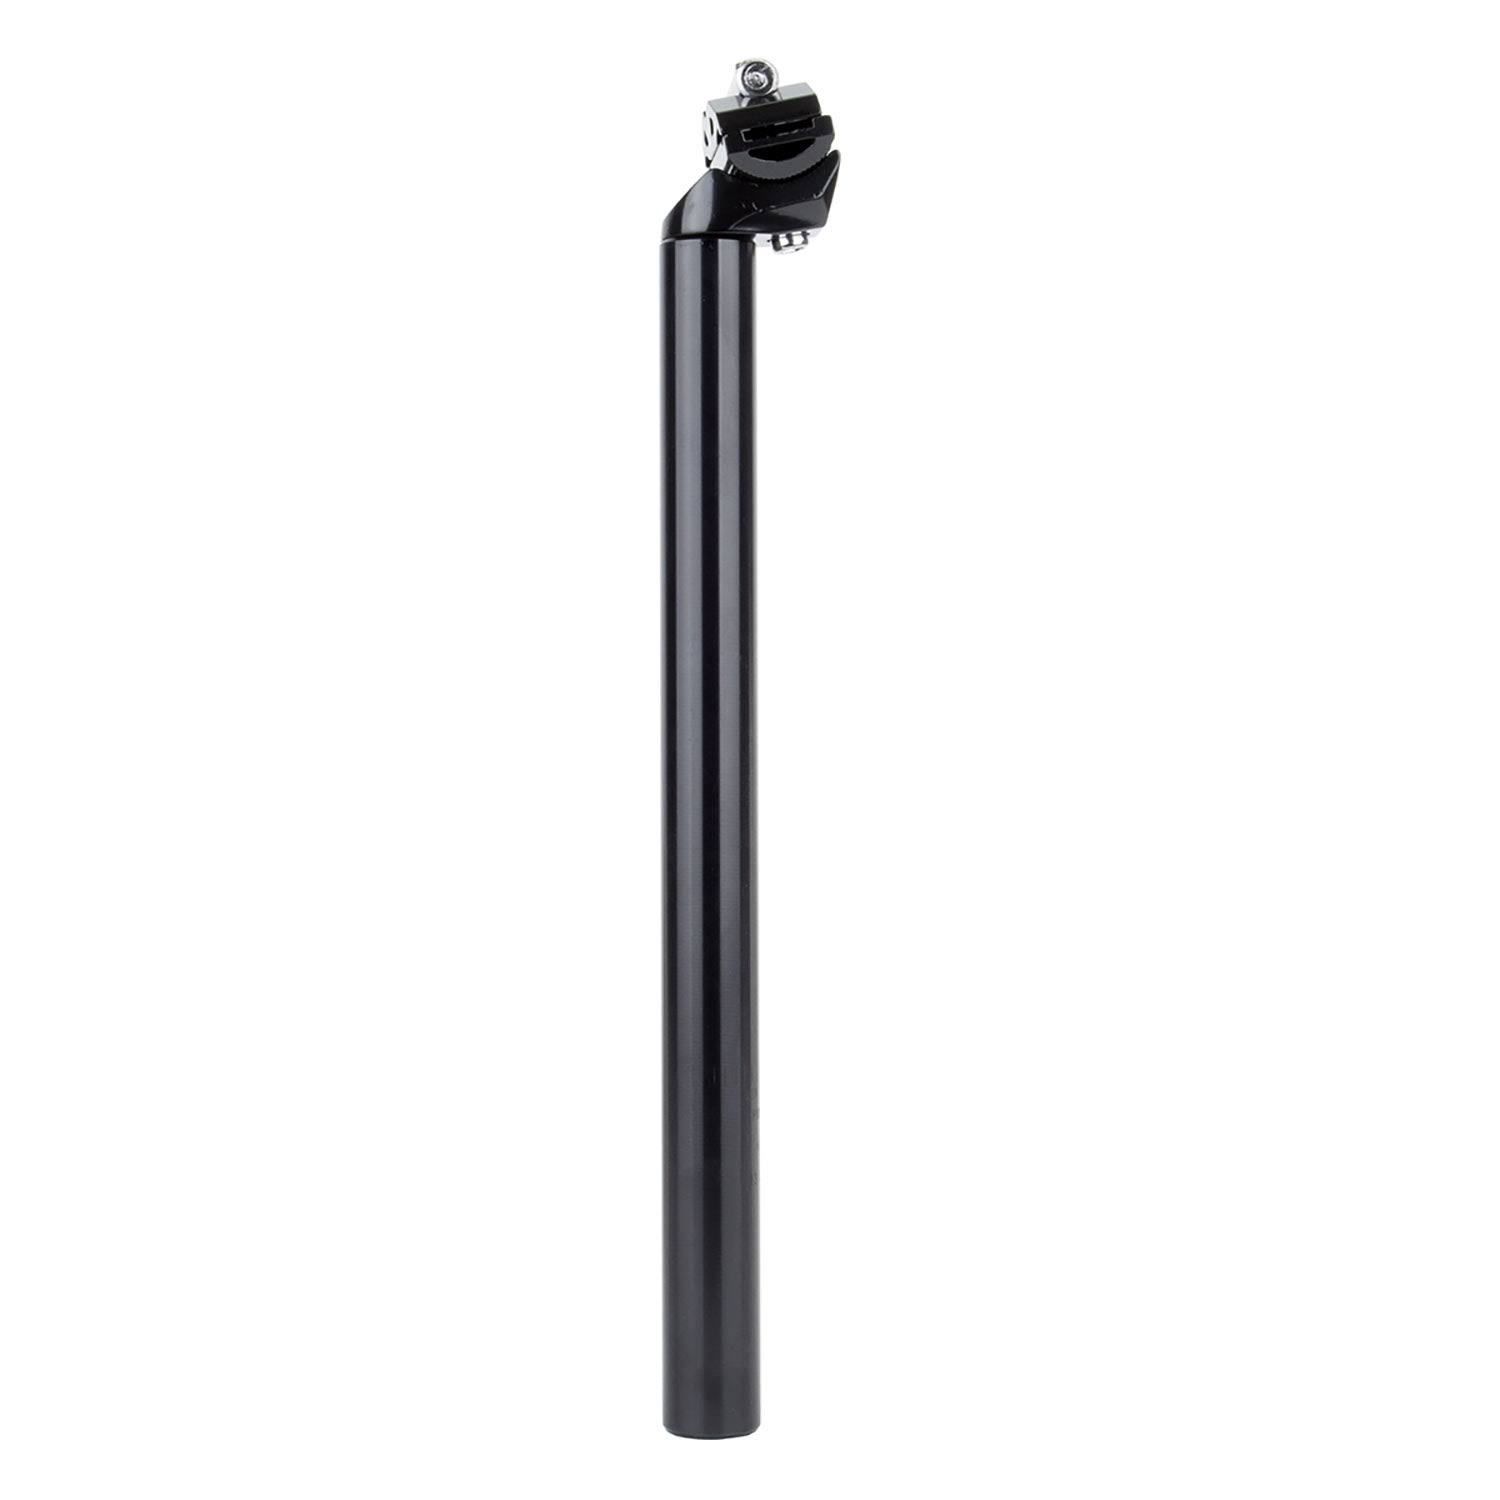 Sunlite Bicycle Classic Alloy Seatpost - 27.2mm x 350mm, Black